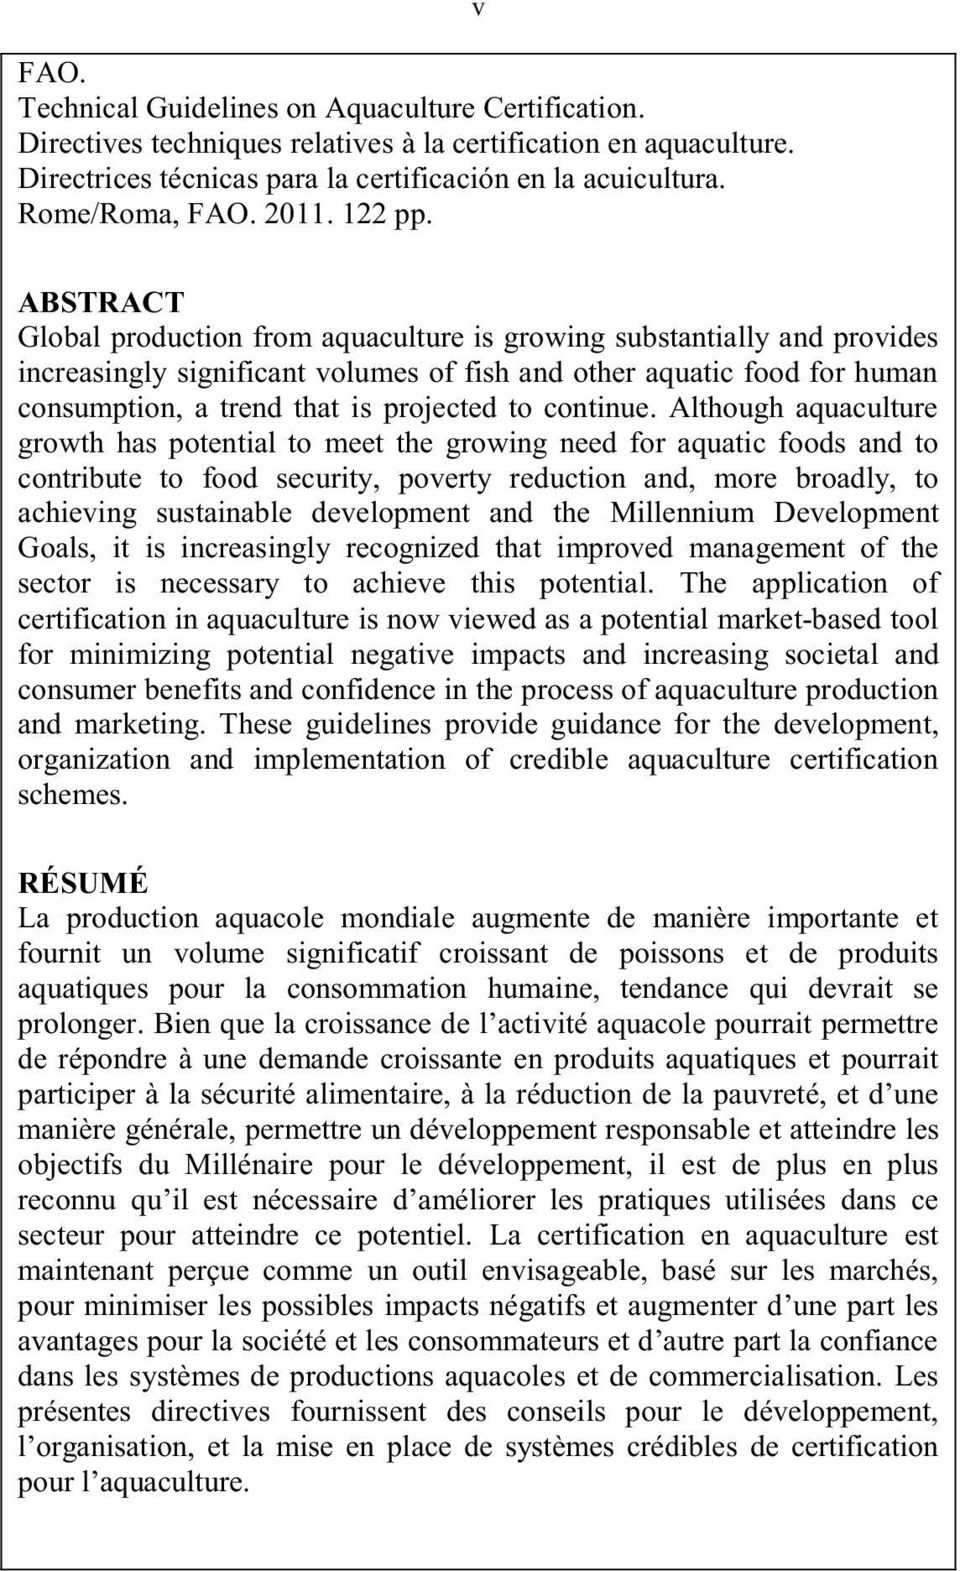 v ABSTRACT Global production from aquaculture is growing substantially and provides increasingly significant volumes of fish and other aquatic food for human consumption, a trend that is projected to